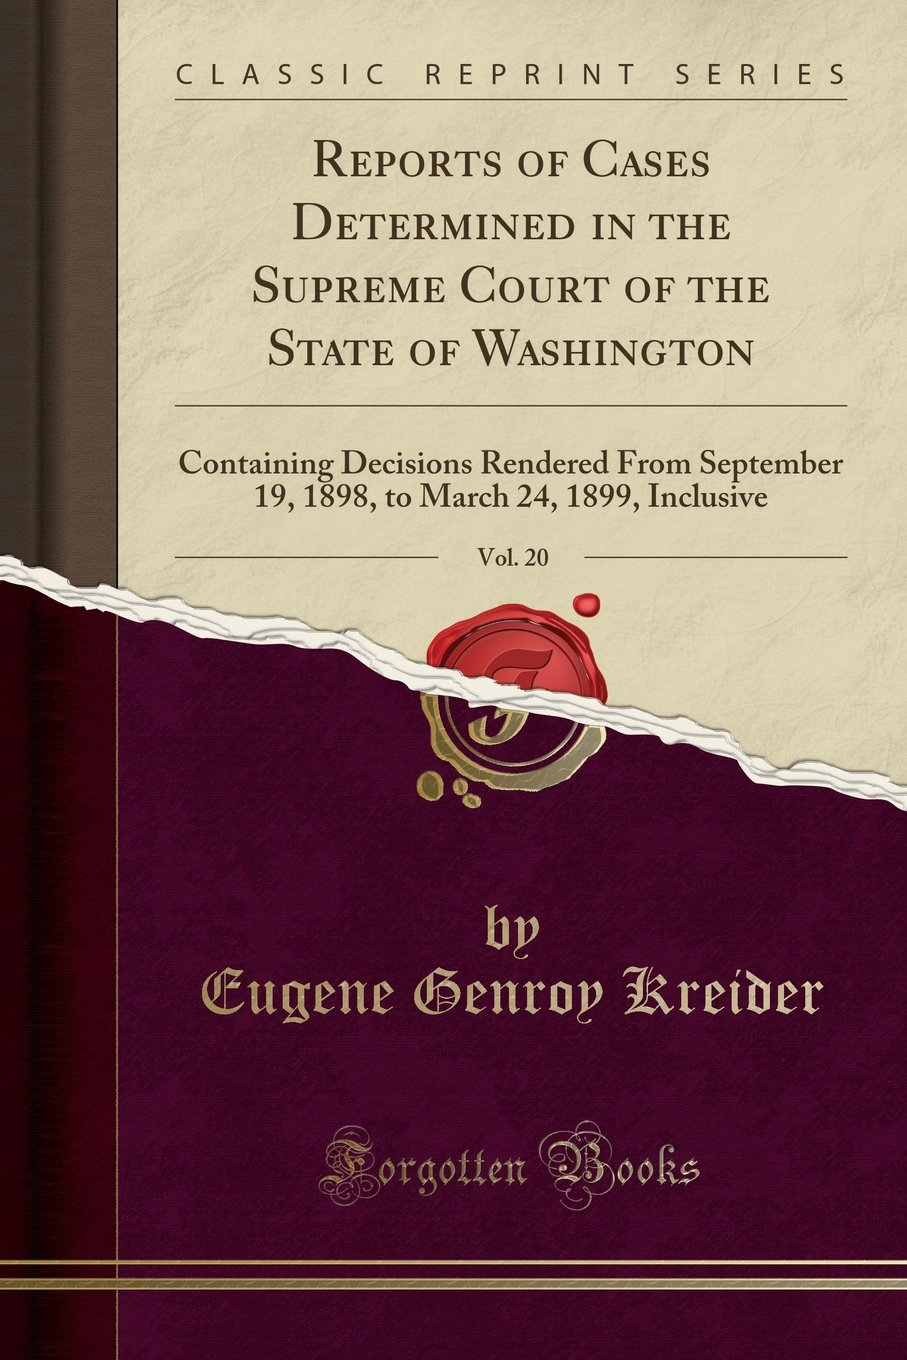 Read Online Reports of Cases Determined in the Supreme Court of the State of Washington, Vol. 20: Containing Decisions Rendered from September 19, 1898, to March 24, 1899, Inclusive (Classic Reprint) pdf